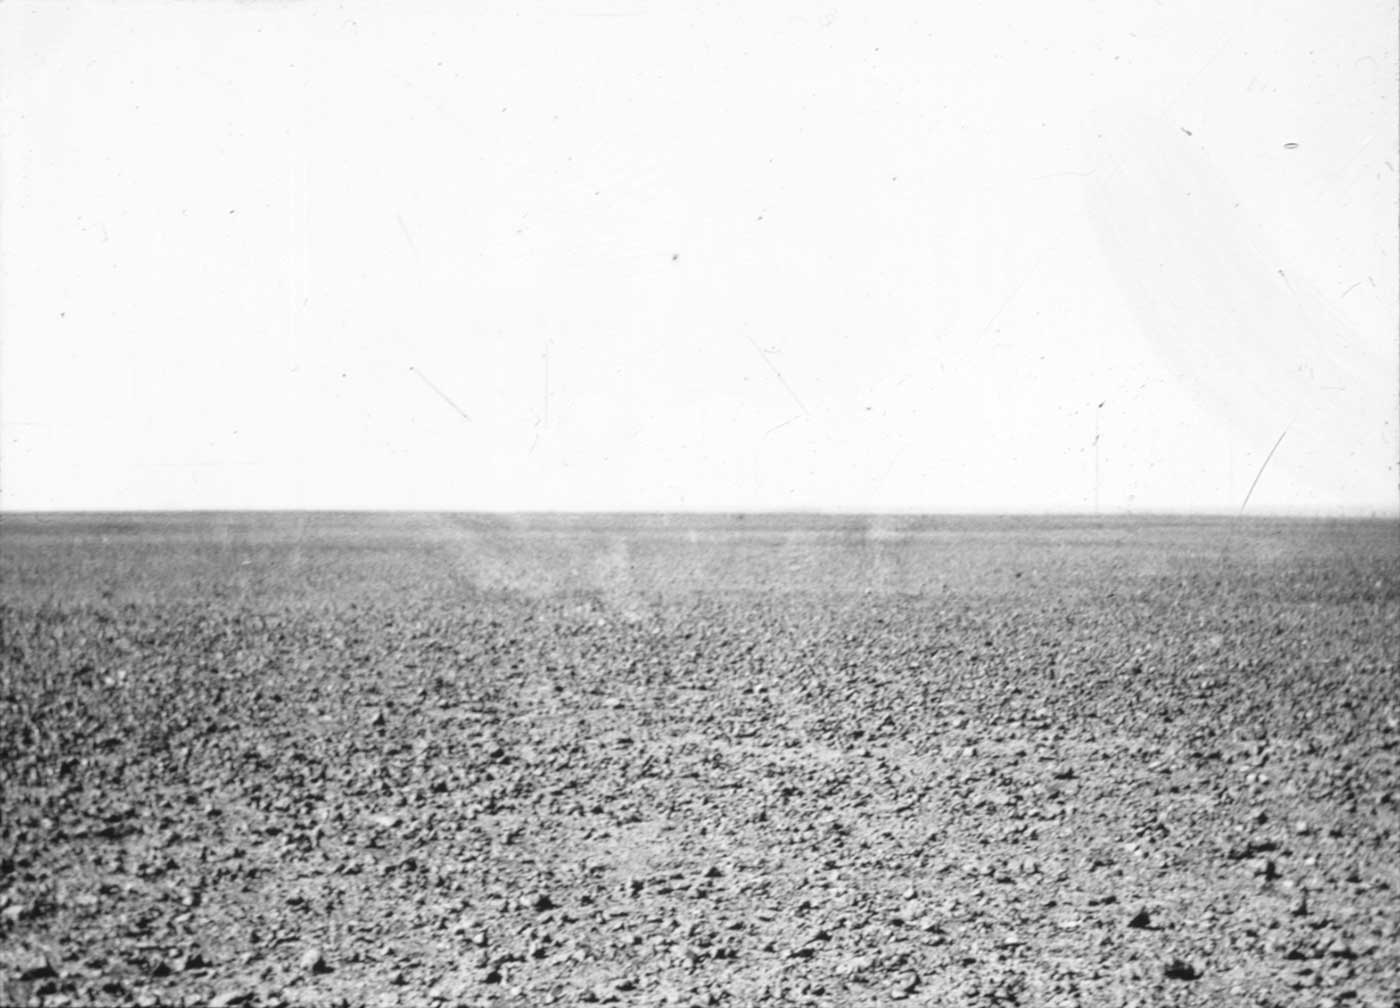 A black and white landscape photograph showing a flat desert scene, extending to a cloudless horizon.